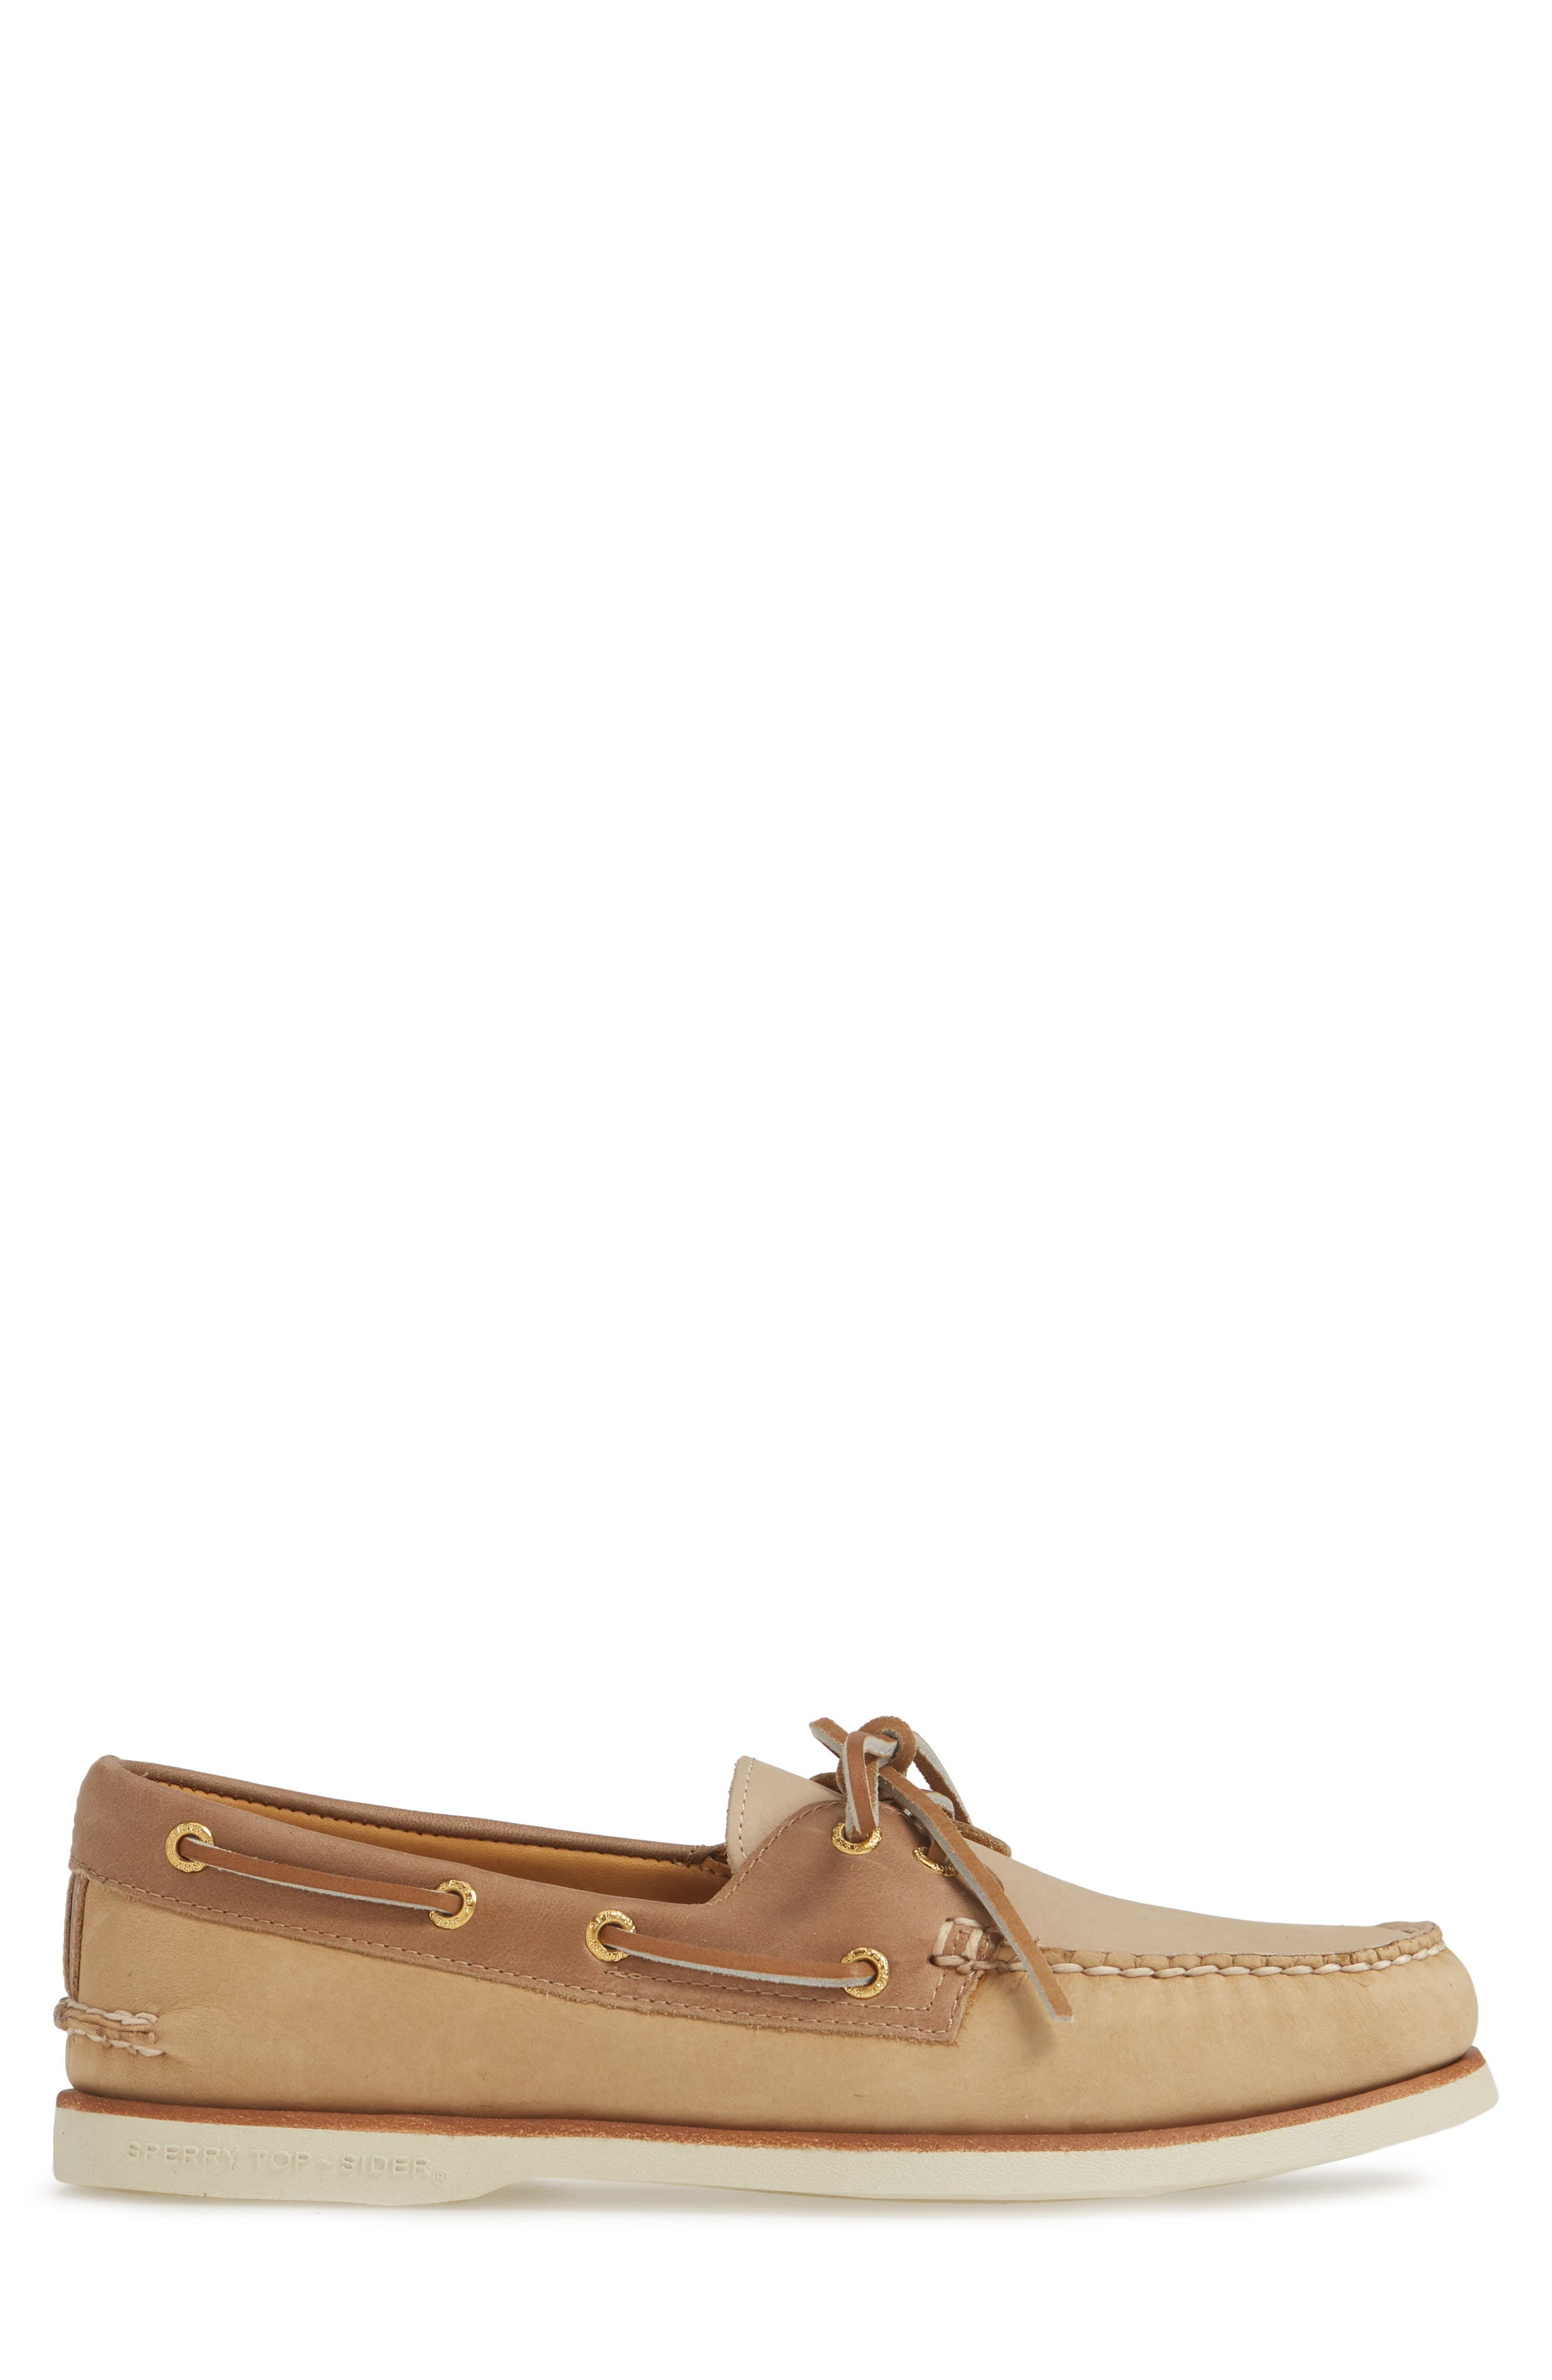 SPERRY, Gold Cup Authentic Original Boat Shoe, Alternate thumbnail 3, color, TAN/ BROWN/ CREAM LEATHER